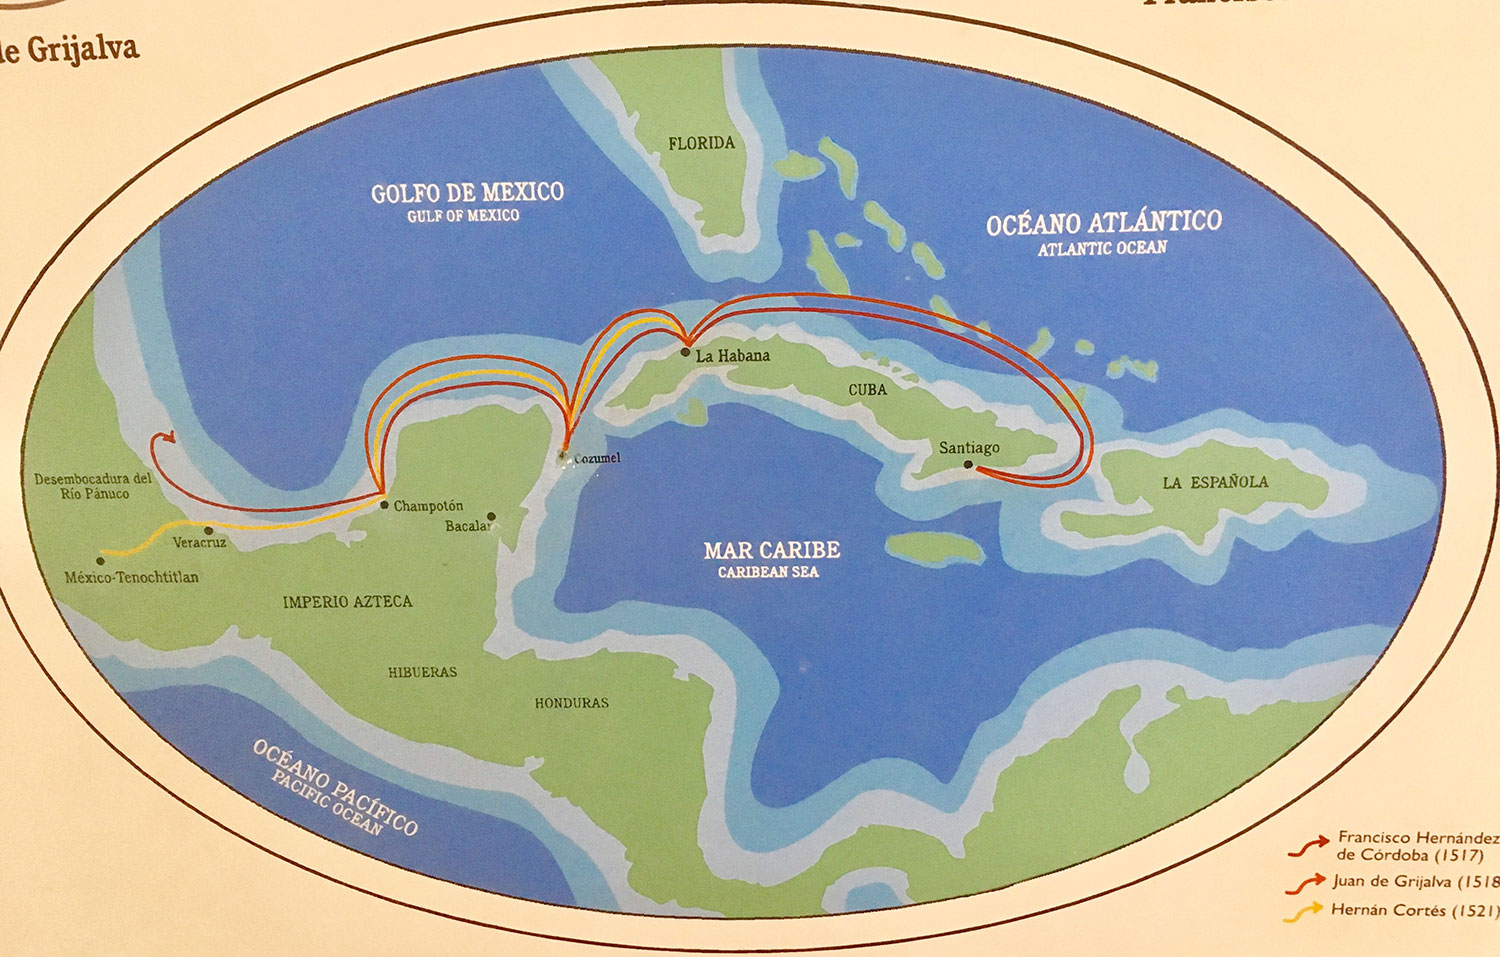 Routes of the first Spanish expeditions, as drawn on the Museum maps.